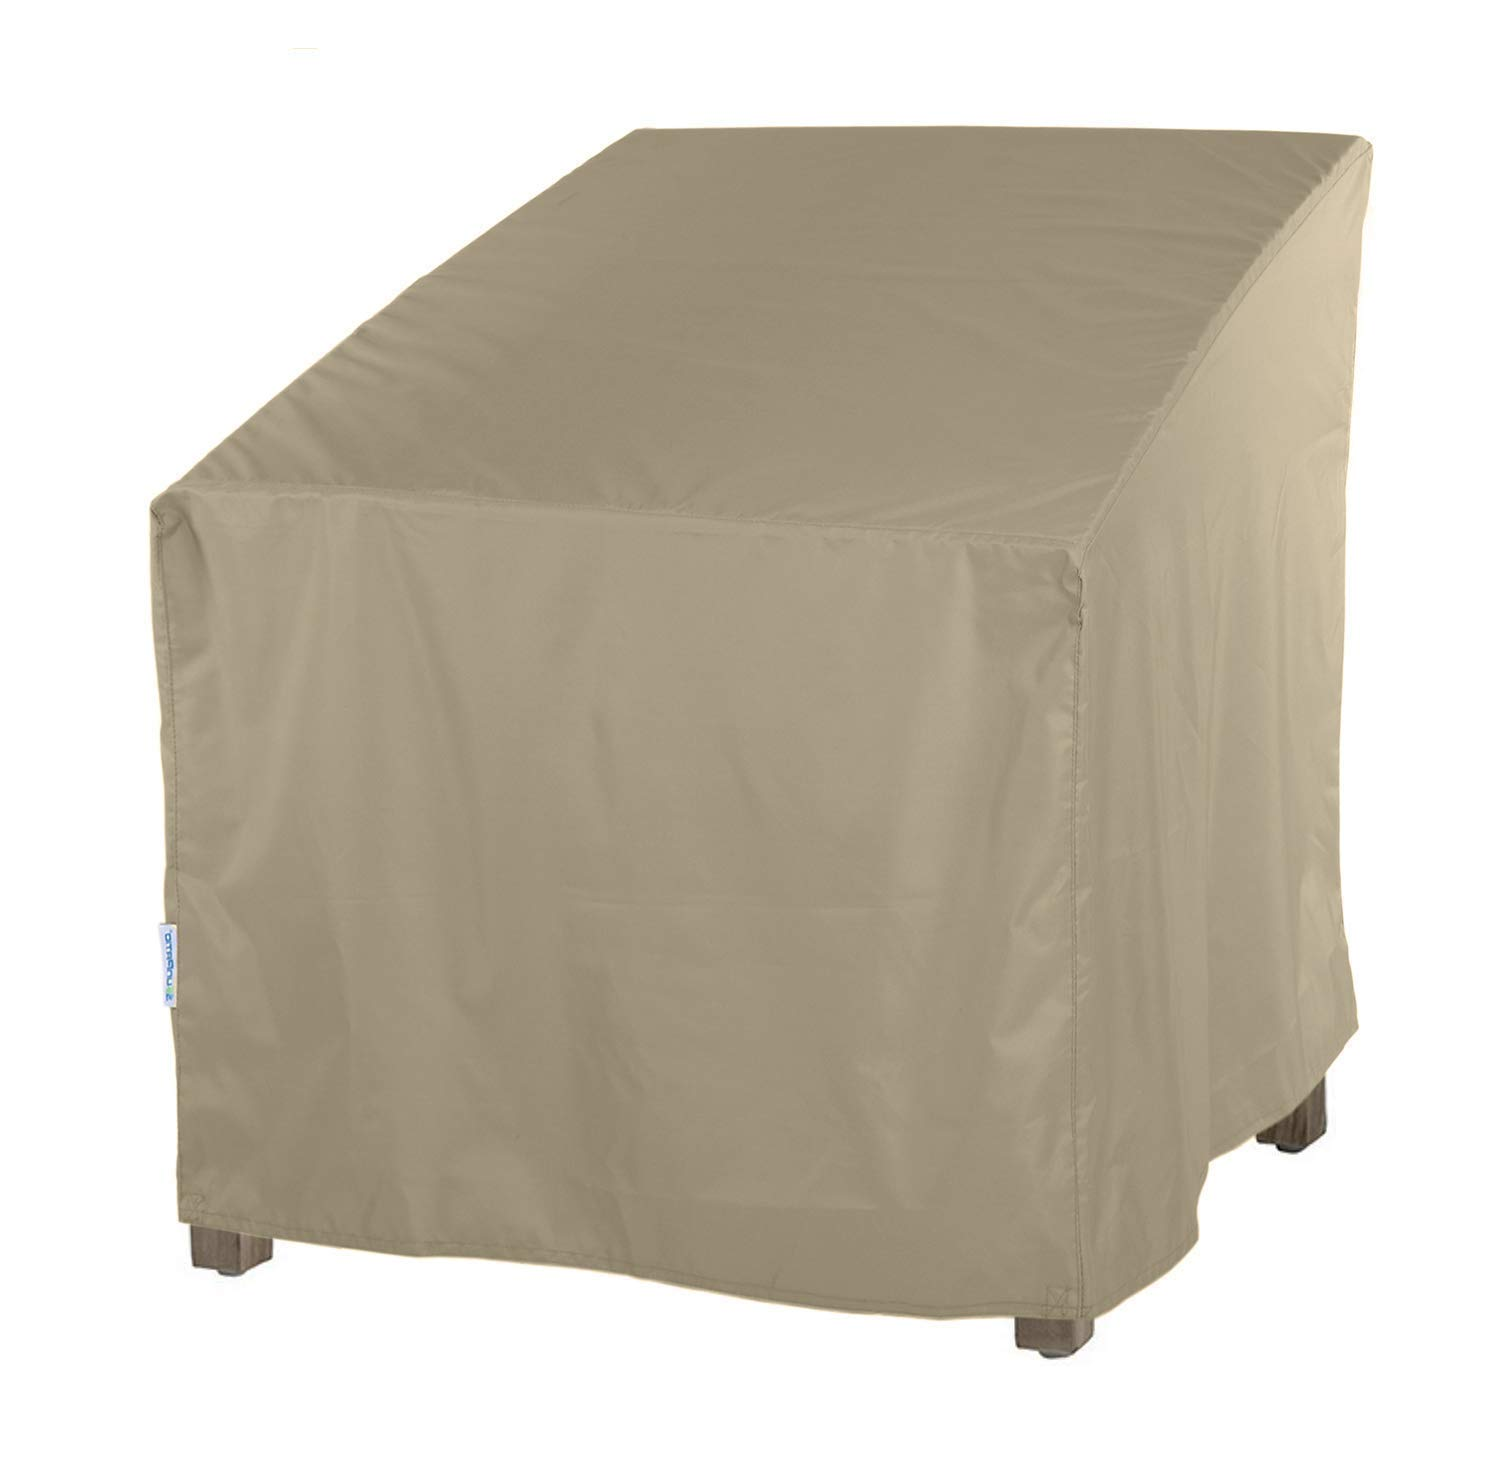 """SunPatio Outdoor Oversized Club Chair Cover, Water Resistant, Lightweight, Helpful Air Vents, All Weather Protection, 40"""" W x 34"""" D x 39"""" H, Neutral Taupe"""